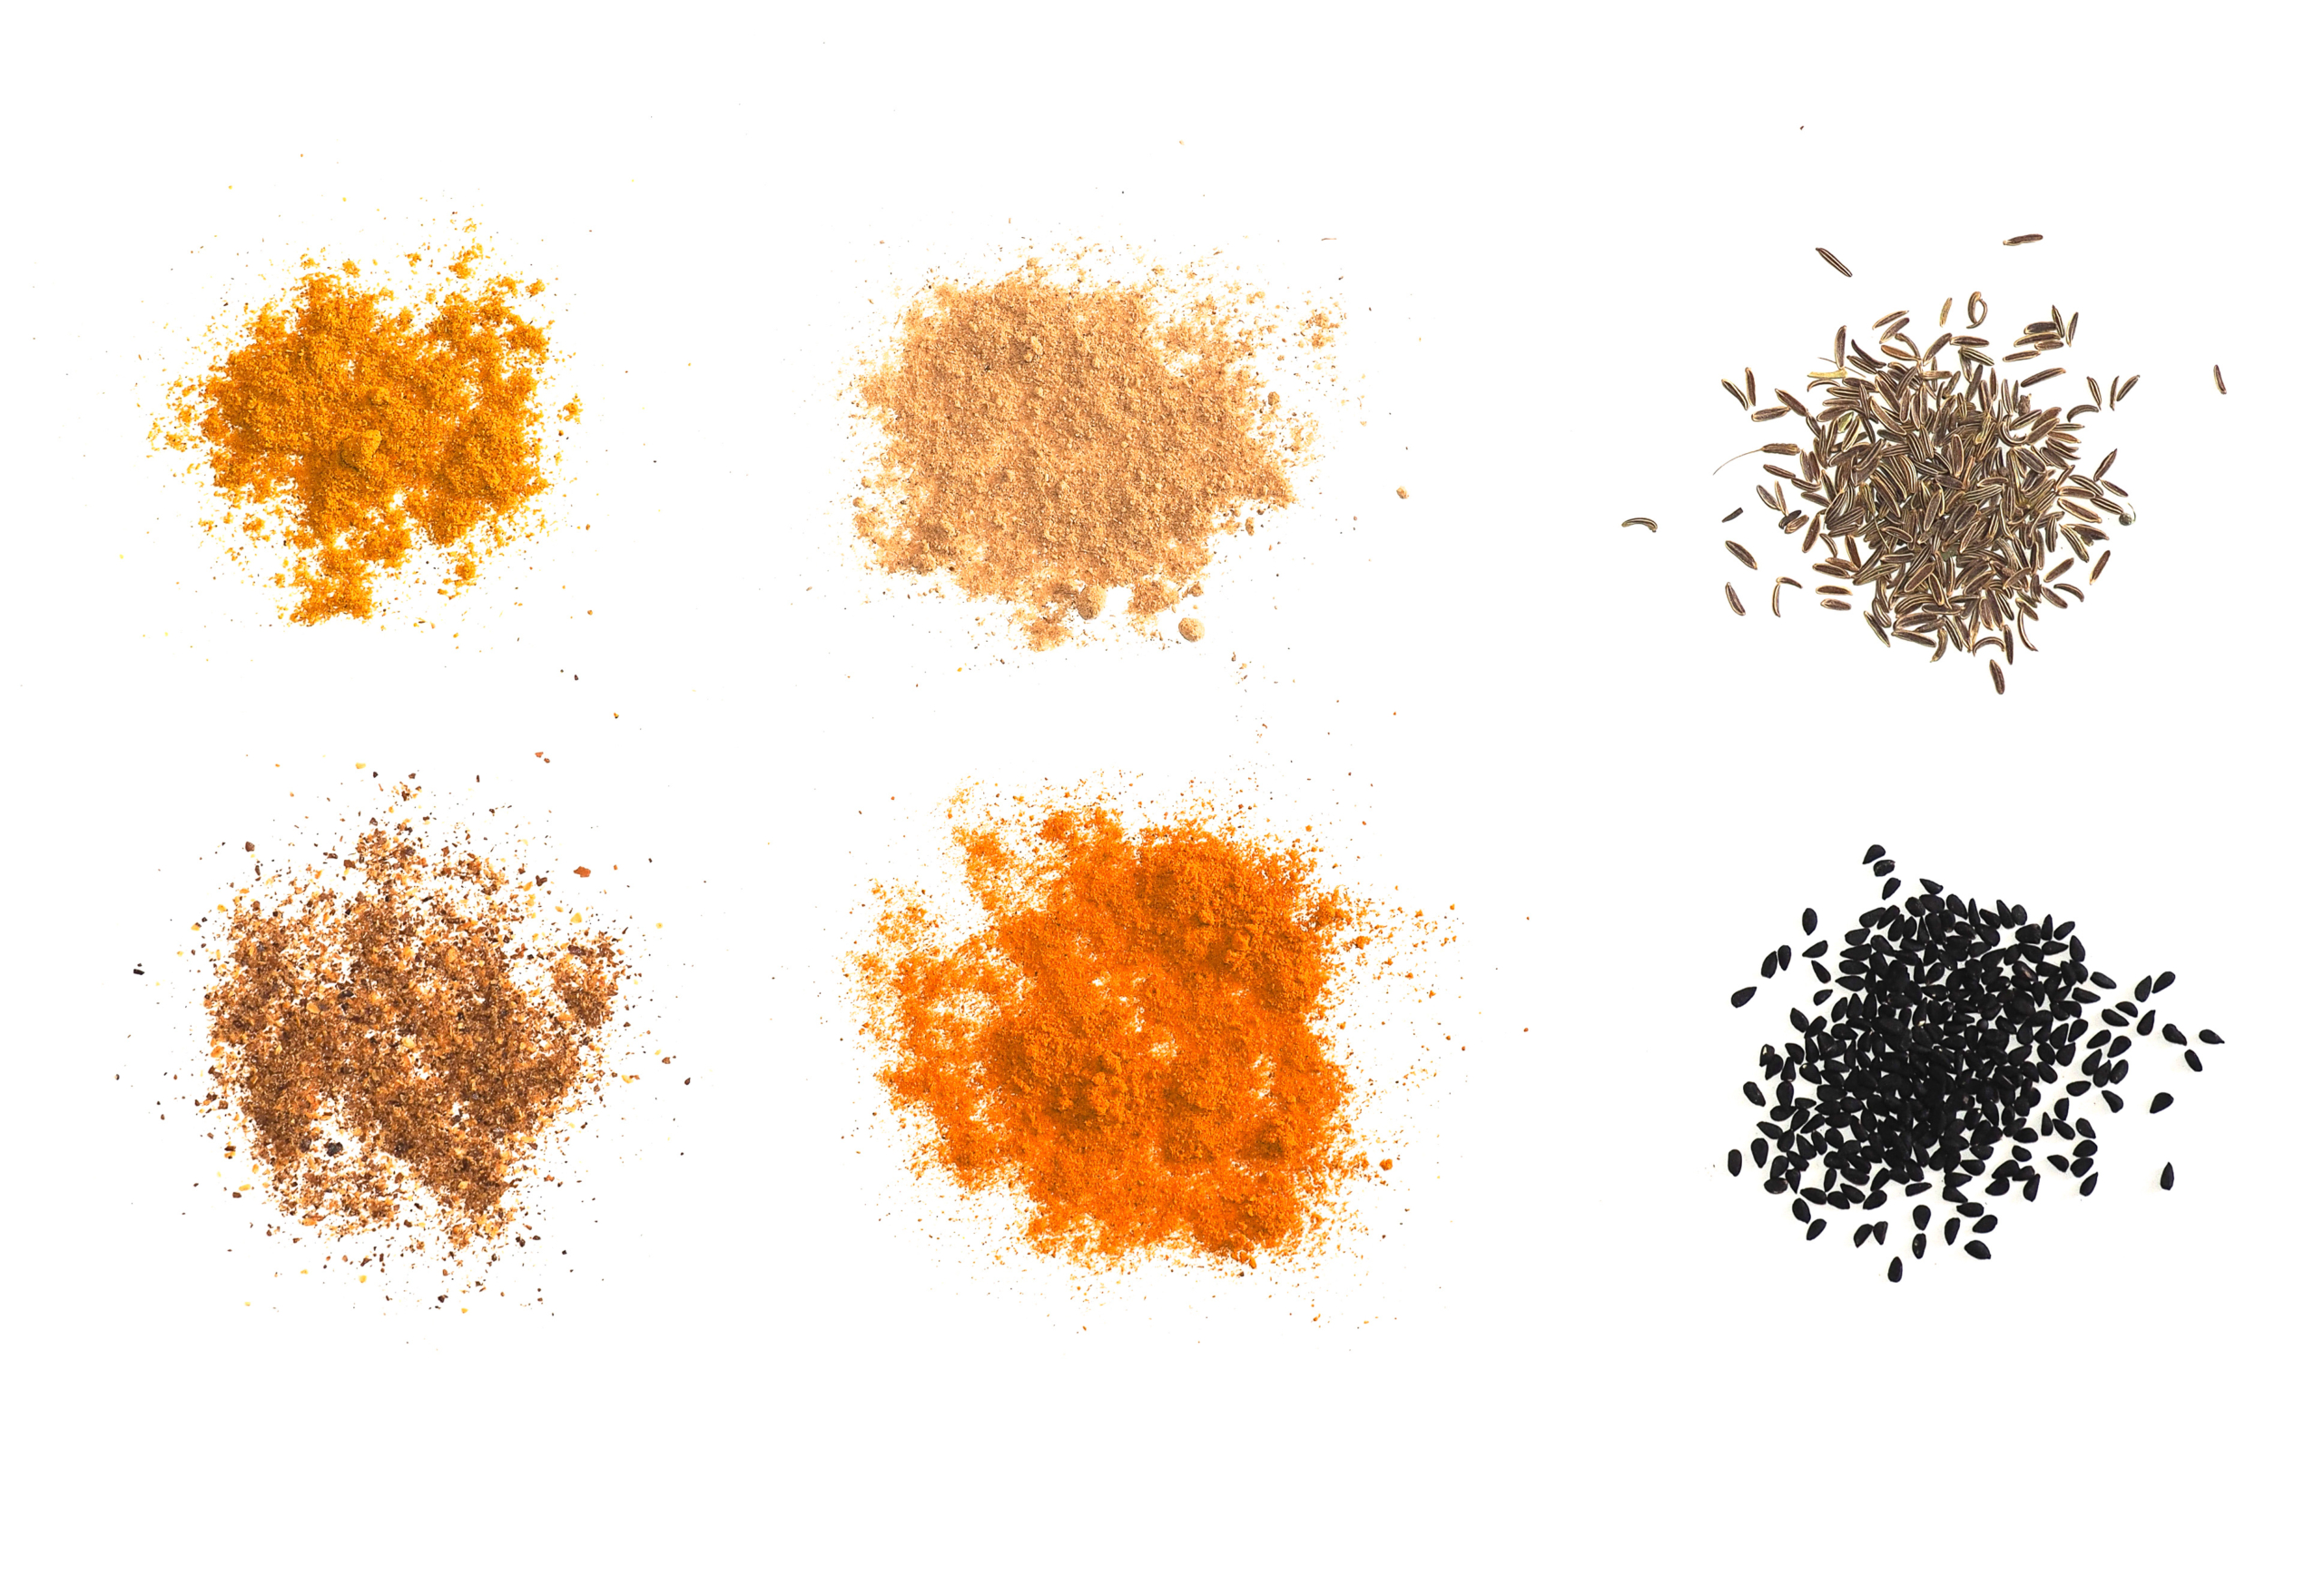 Many Indian and South American spices powder including Ginger Curry Turmeric Chili Pepper Black Cumin and Nigella Sativa over white background